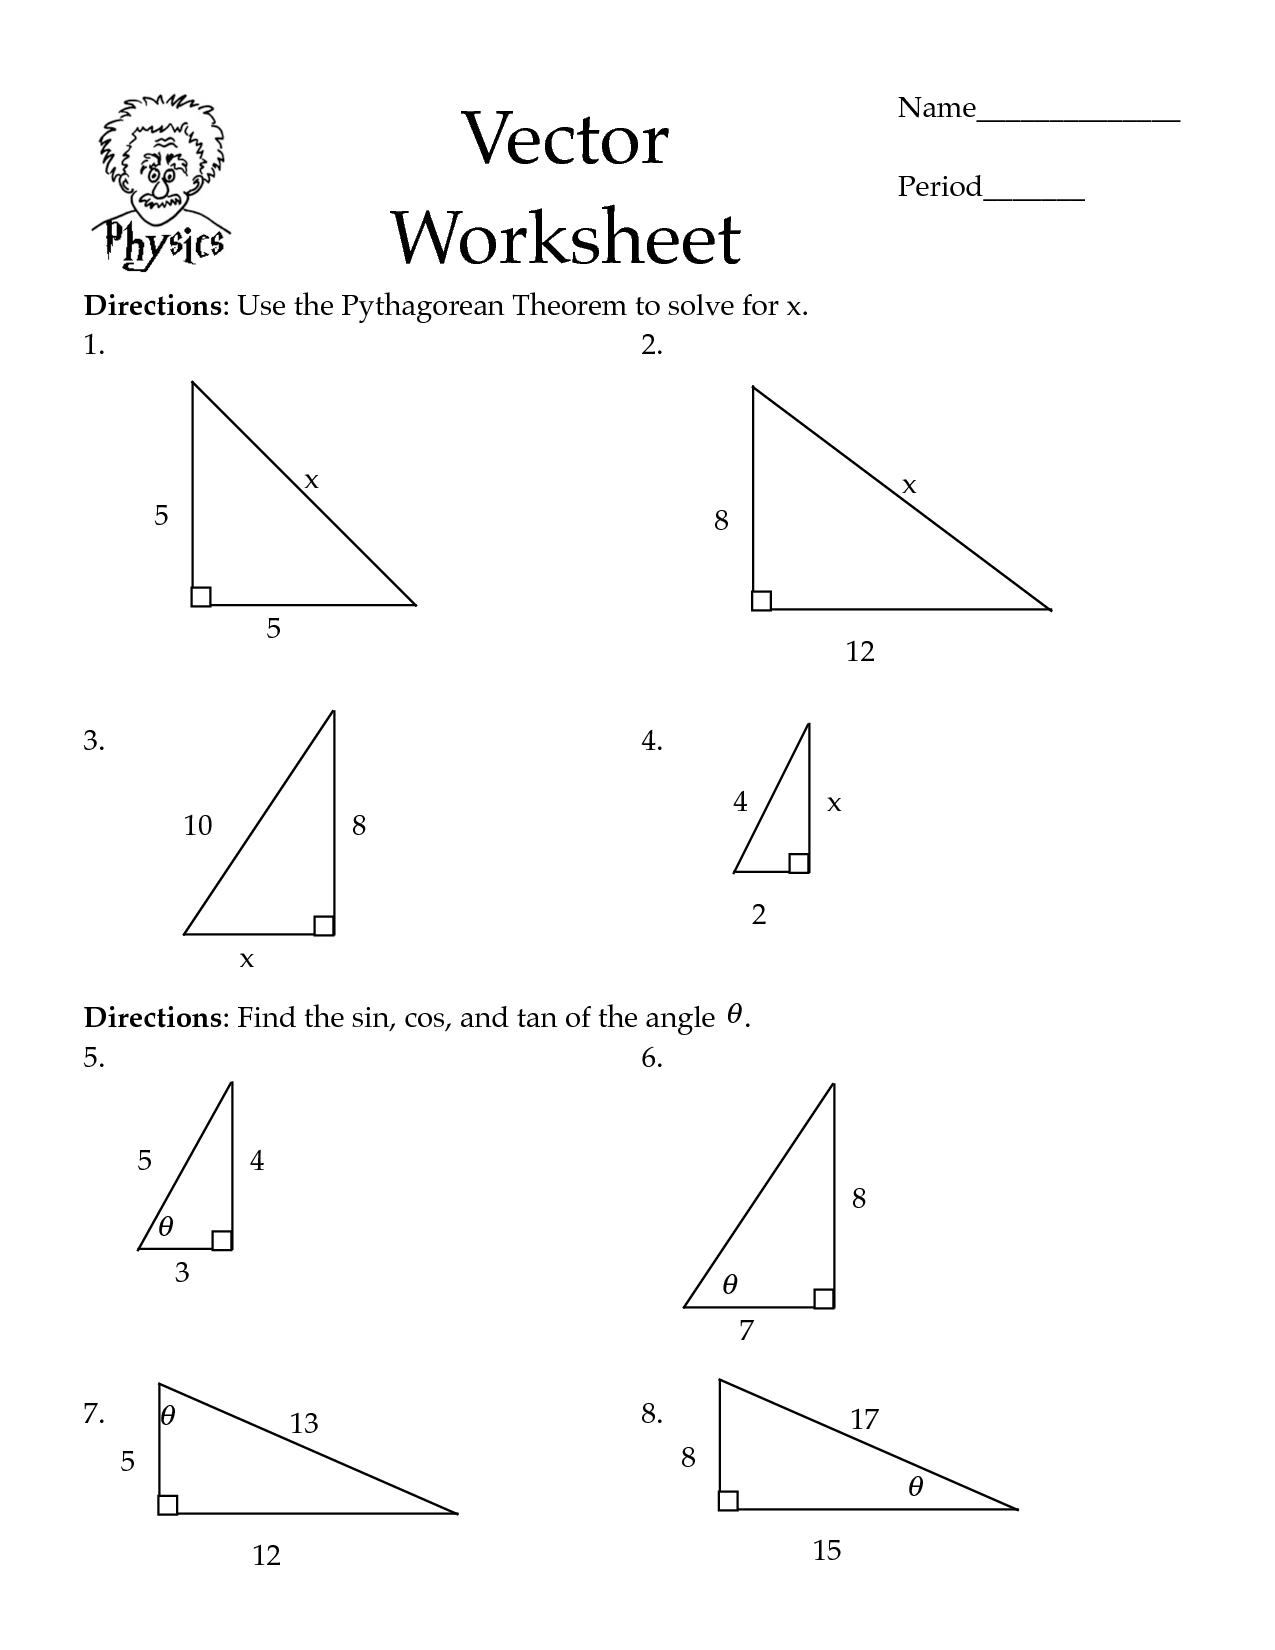 pythagorean theorem worksheets Cos Law Worksheet PDF – Pythagorean Theorem Worksheets